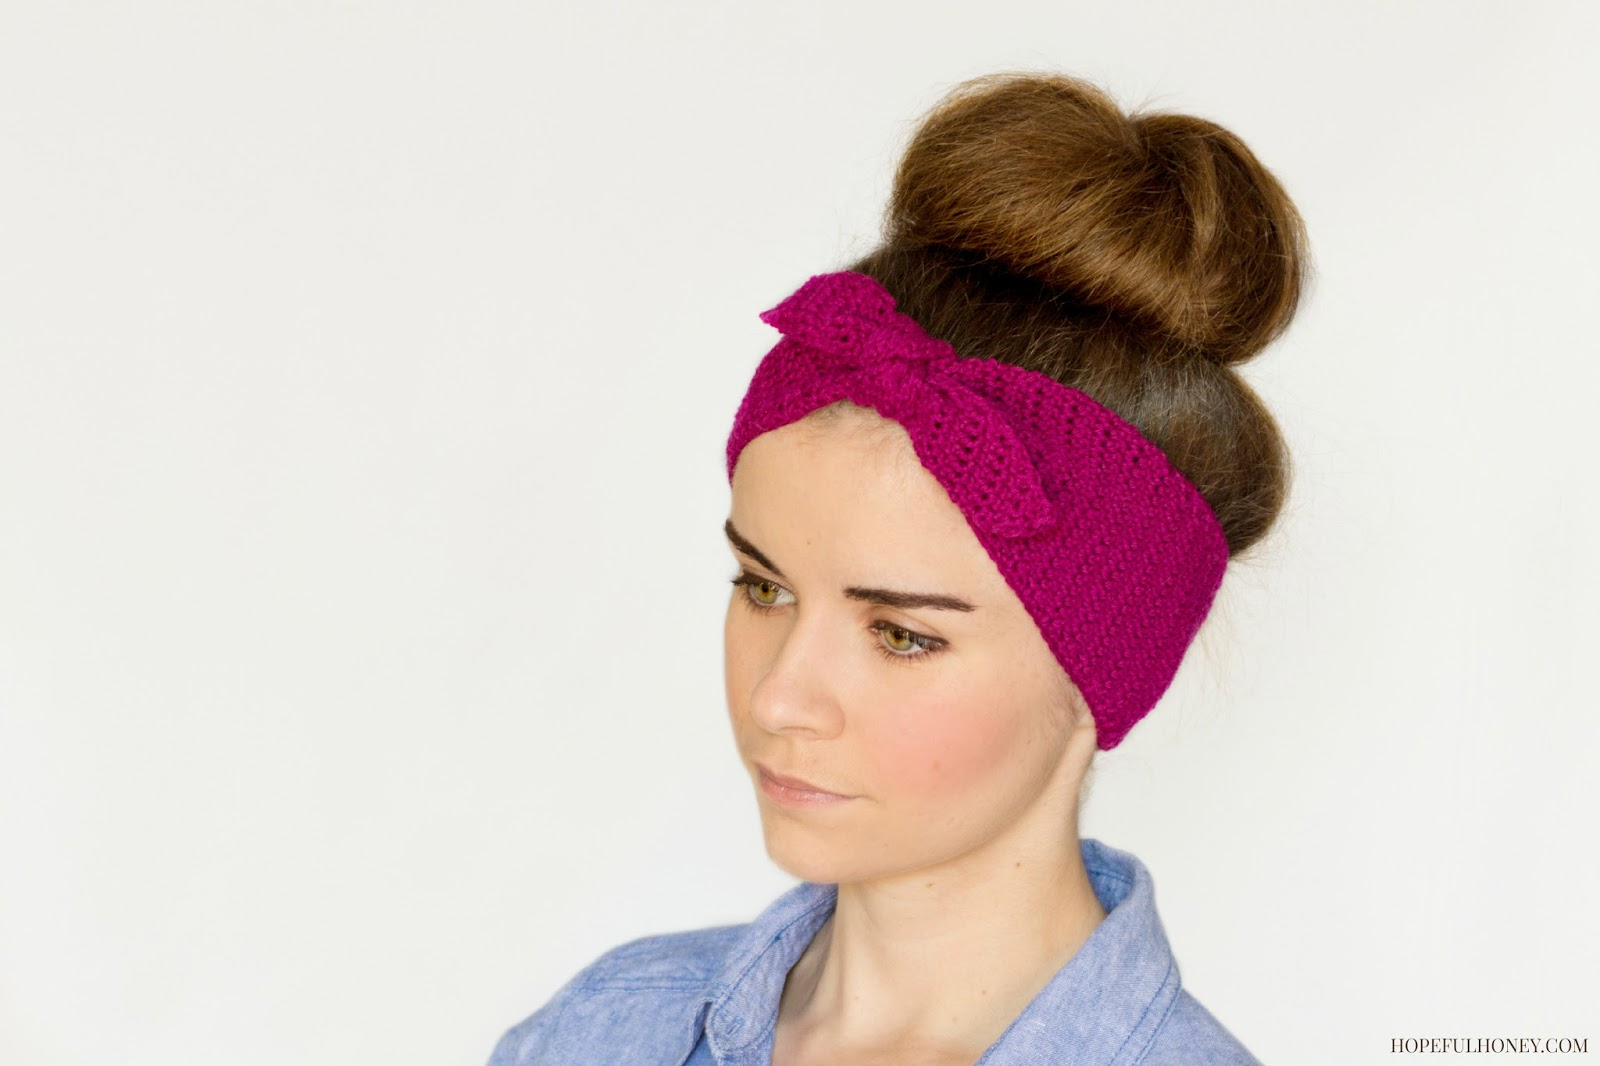 Free Crochet Pattern For Knotted Headband : Hopeful Honey Craft, Crochet, Create: Retro Pin-Up ...